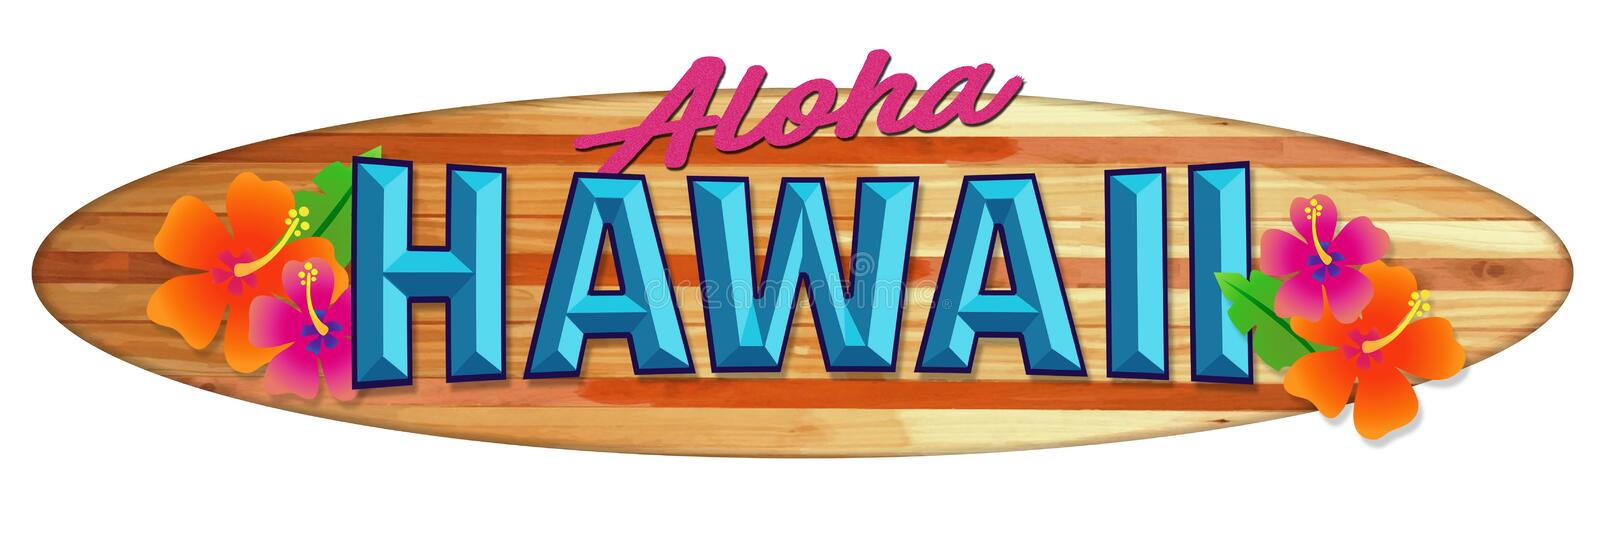 Aloha Hawaii Surfboard Sign. Longboard Wood Hawaii Vintage Retro colorful flowers tropical vacation travel stock illustration